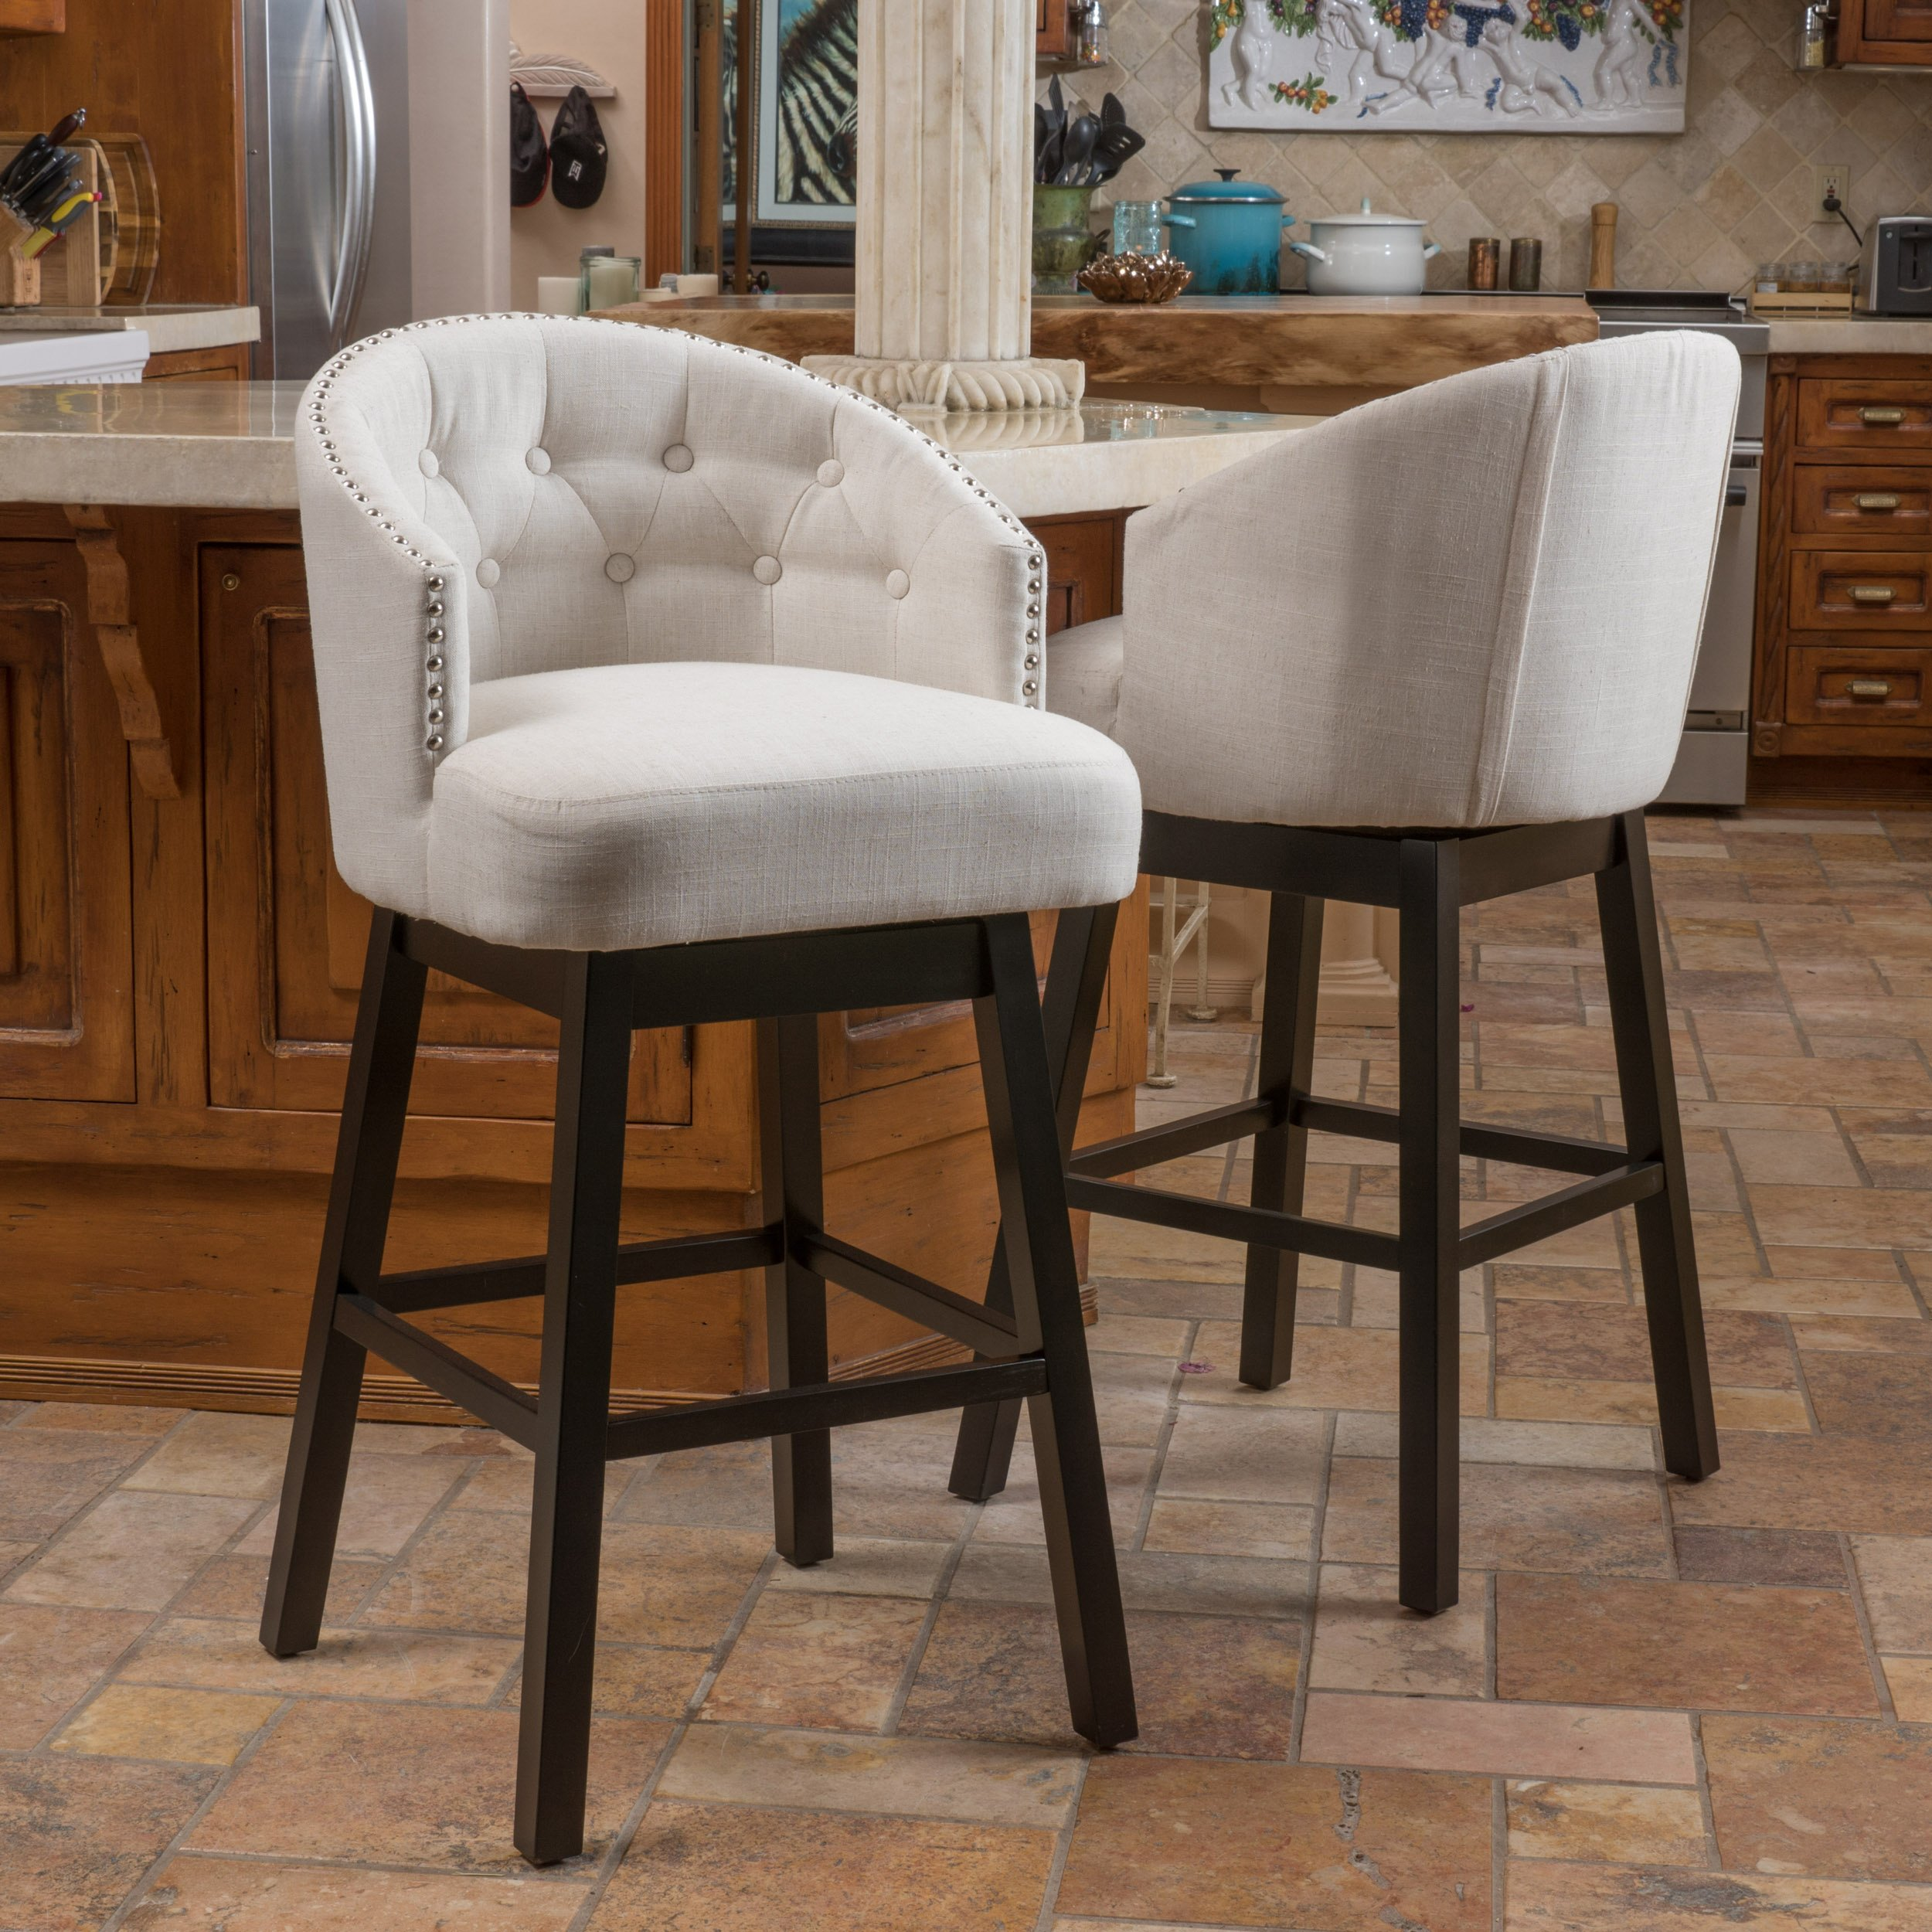 Christopher Knight Home 295977 Ogden Barstool (Set of 2), Beige by Christopher Knight Home